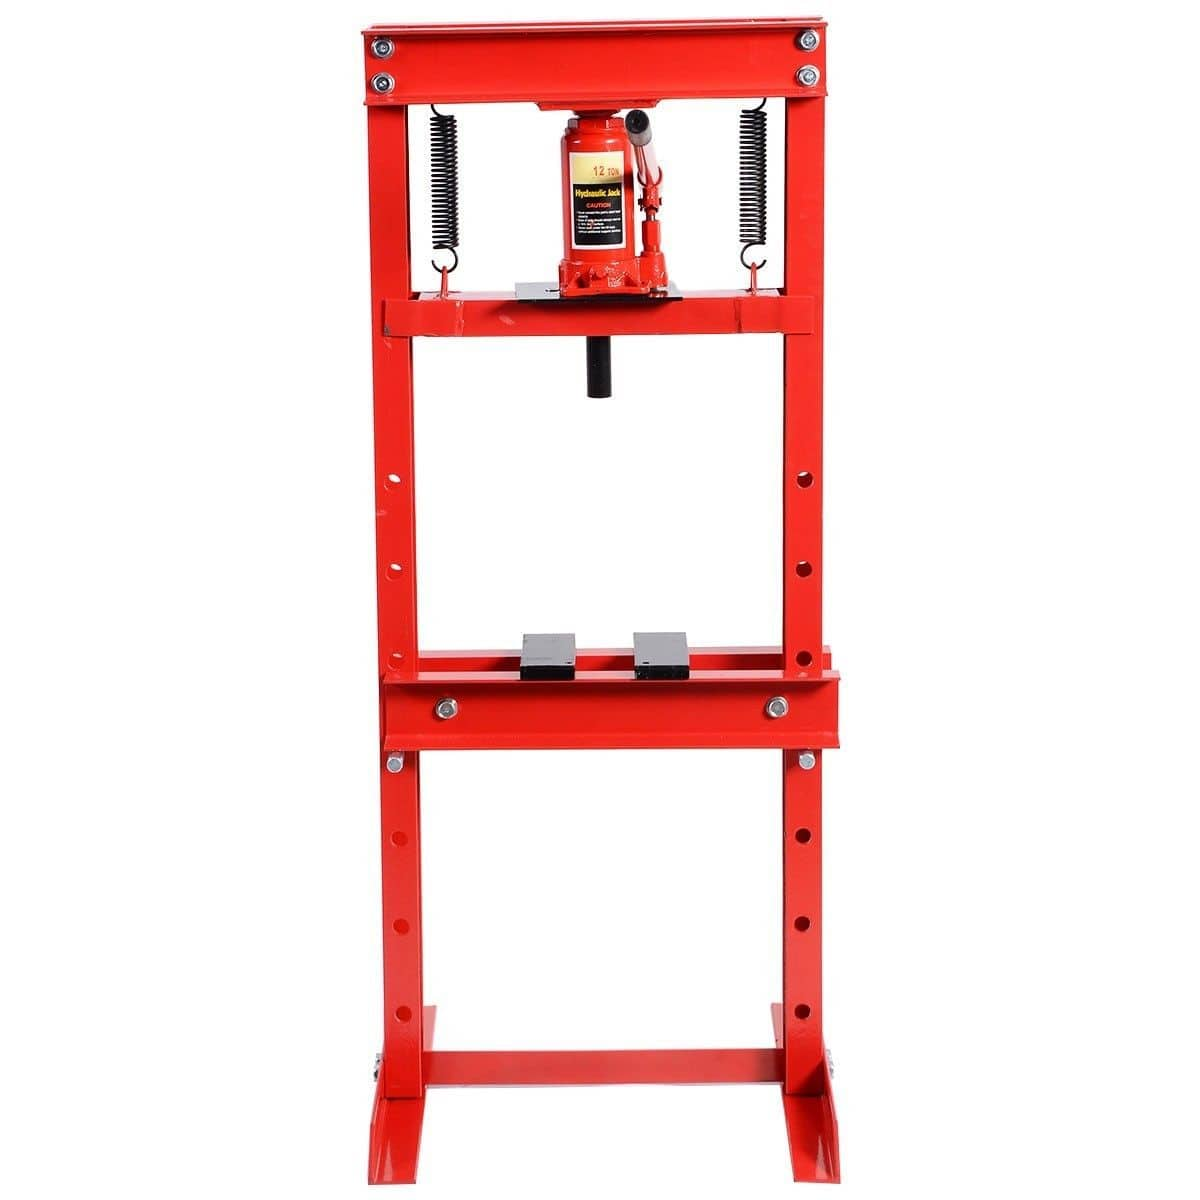 12 Ton H-Frame Shop Press Hydraulic Jack Stand